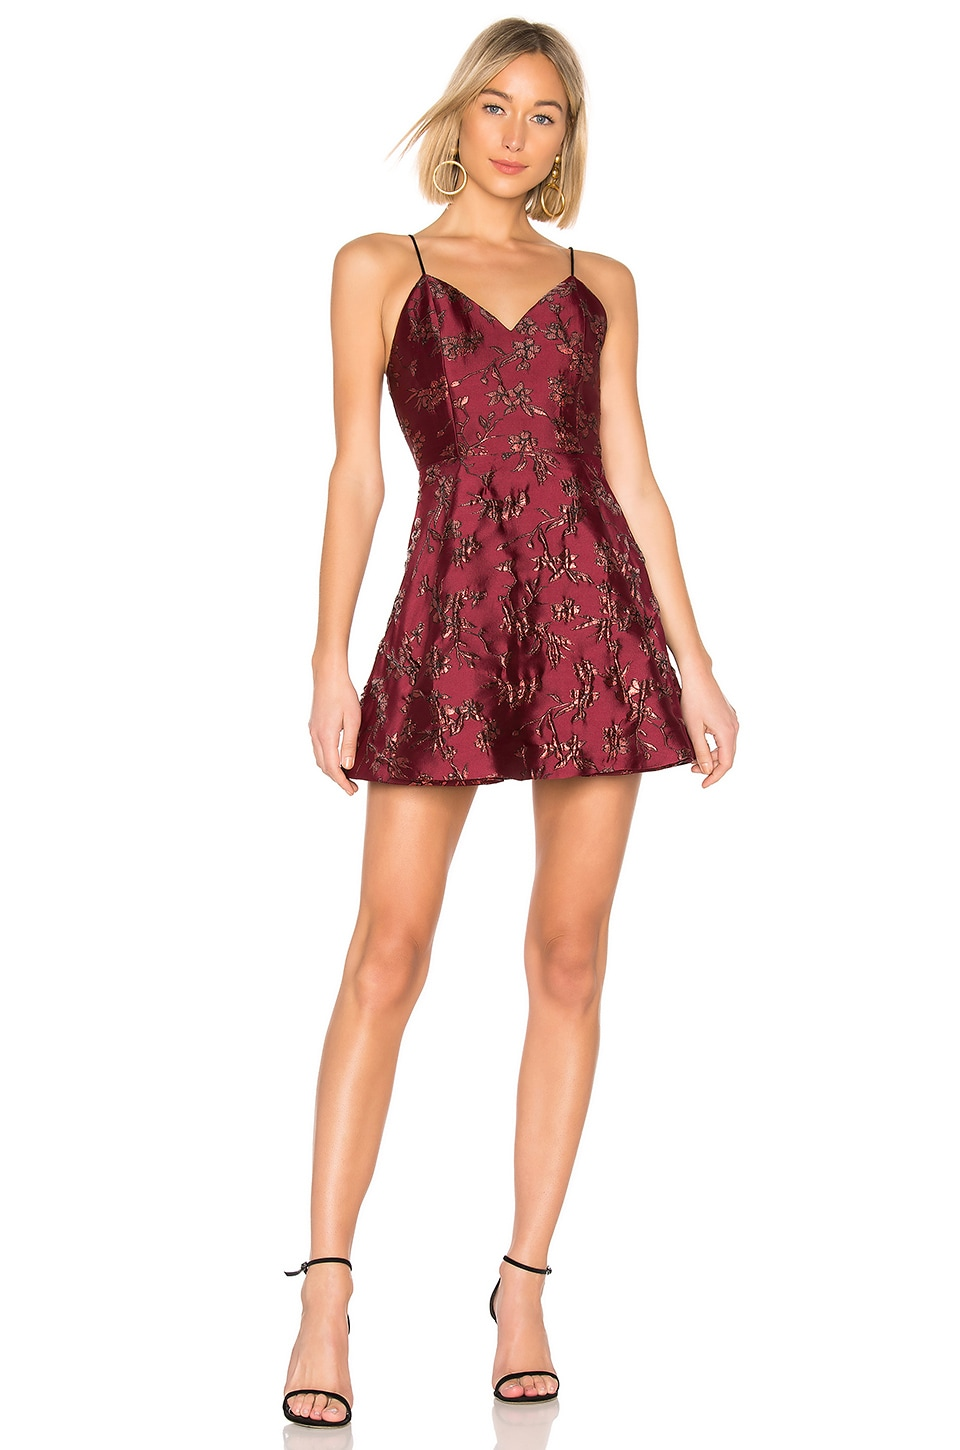 Alice + Olivia Anette Party Dress in Bordeaux